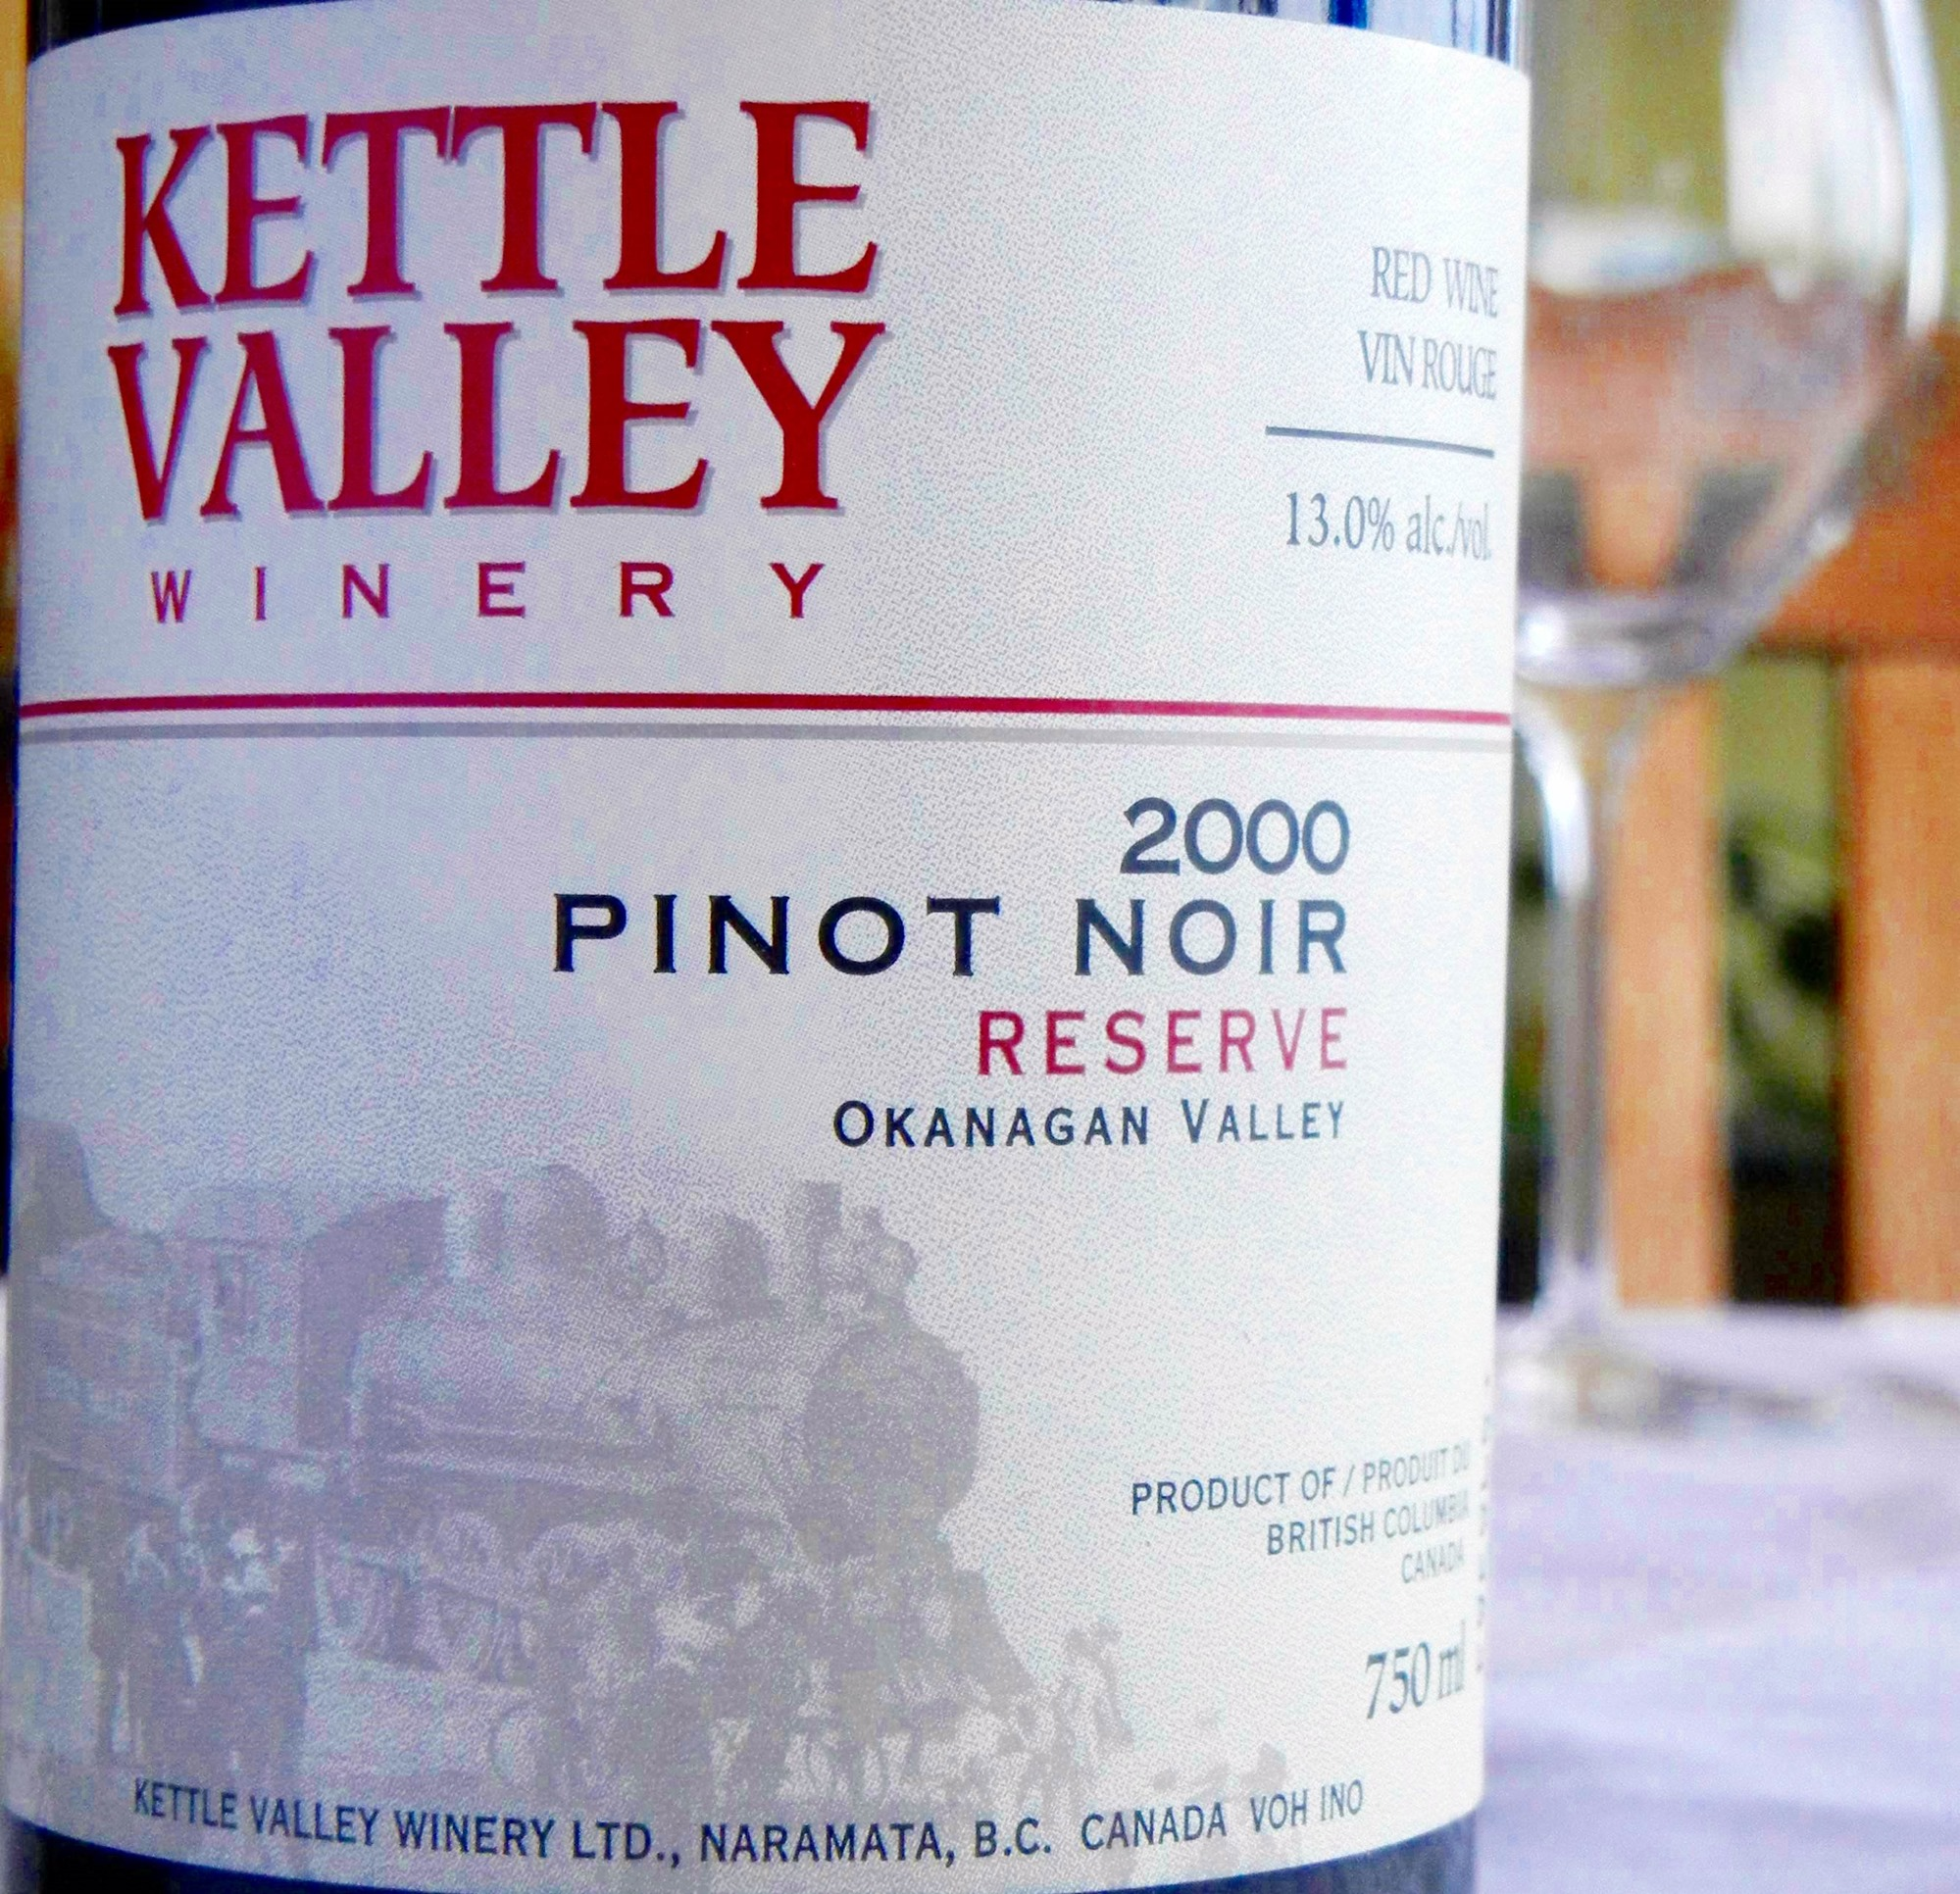 Kettle Valley Reserve Pinot Noir 2000 Label - BC Pinot Noir Tasting Review 25